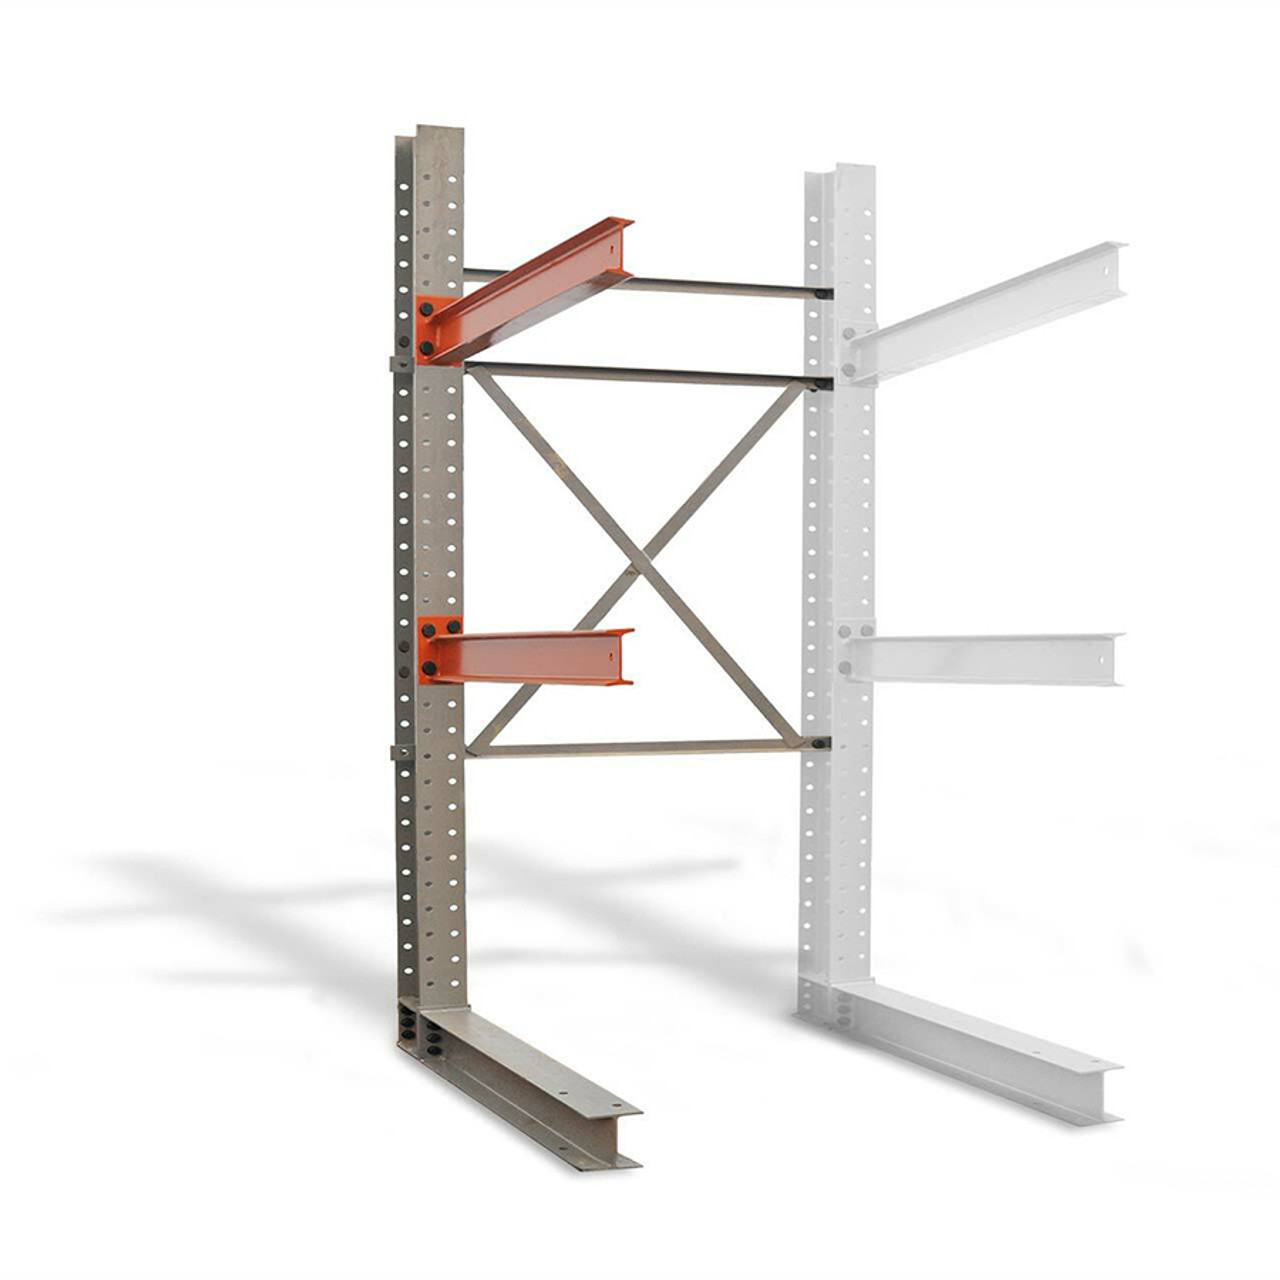 Single sided add-on cantilever rack kit